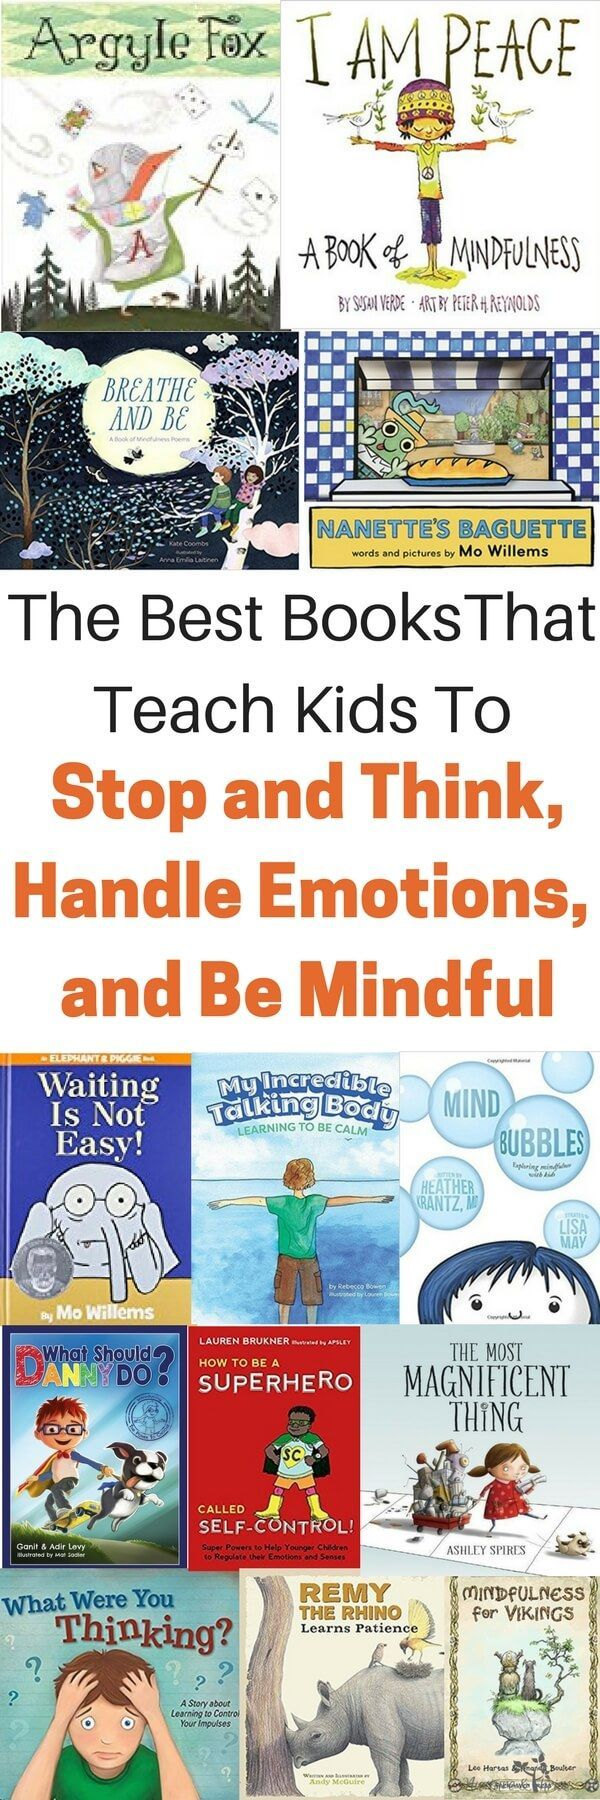 the best books to teach kids self control mindfulness and regulation reading teaching kids. Black Bedroom Furniture Sets. Home Design Ideas